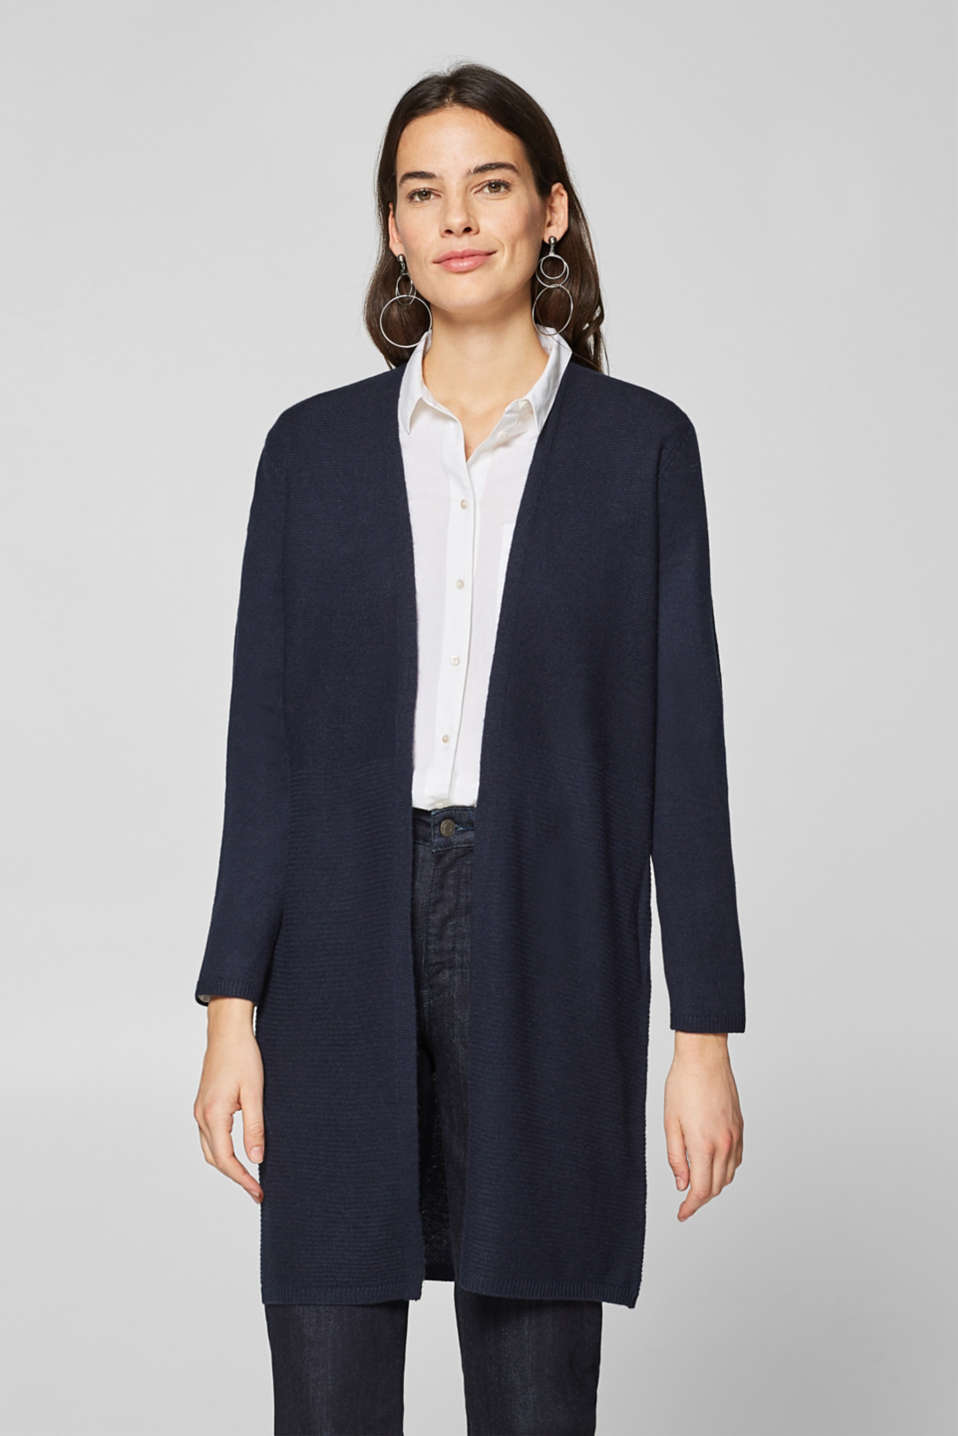 Esprit - Made of wool/cashmere: Textured cardigan